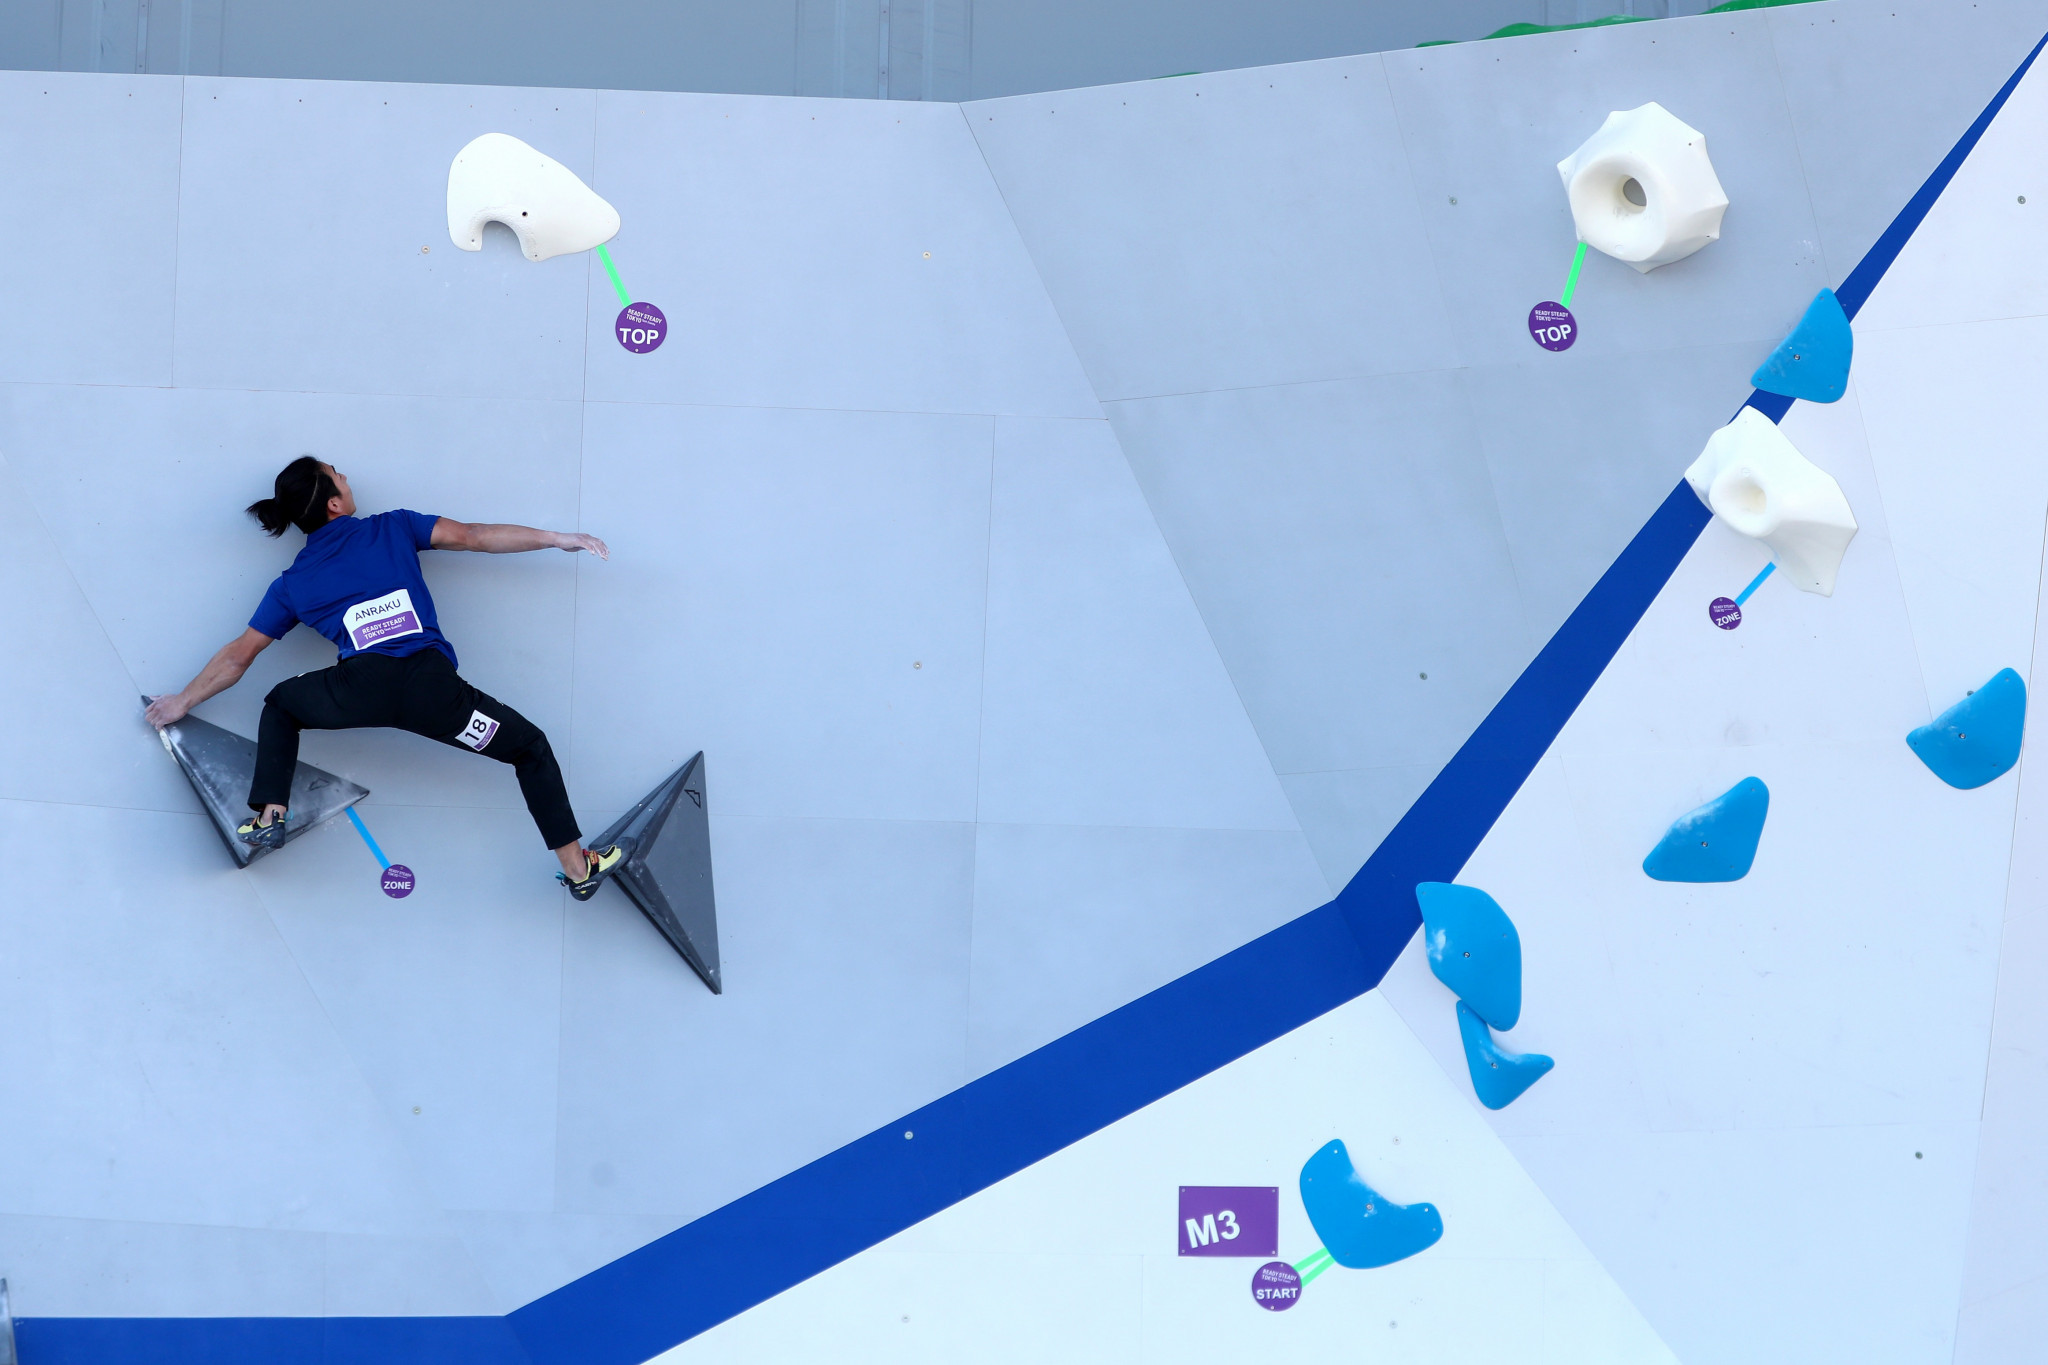 Sport climbing is set for two IFSC World Cup legs in Salt Lake City ©Getty Images